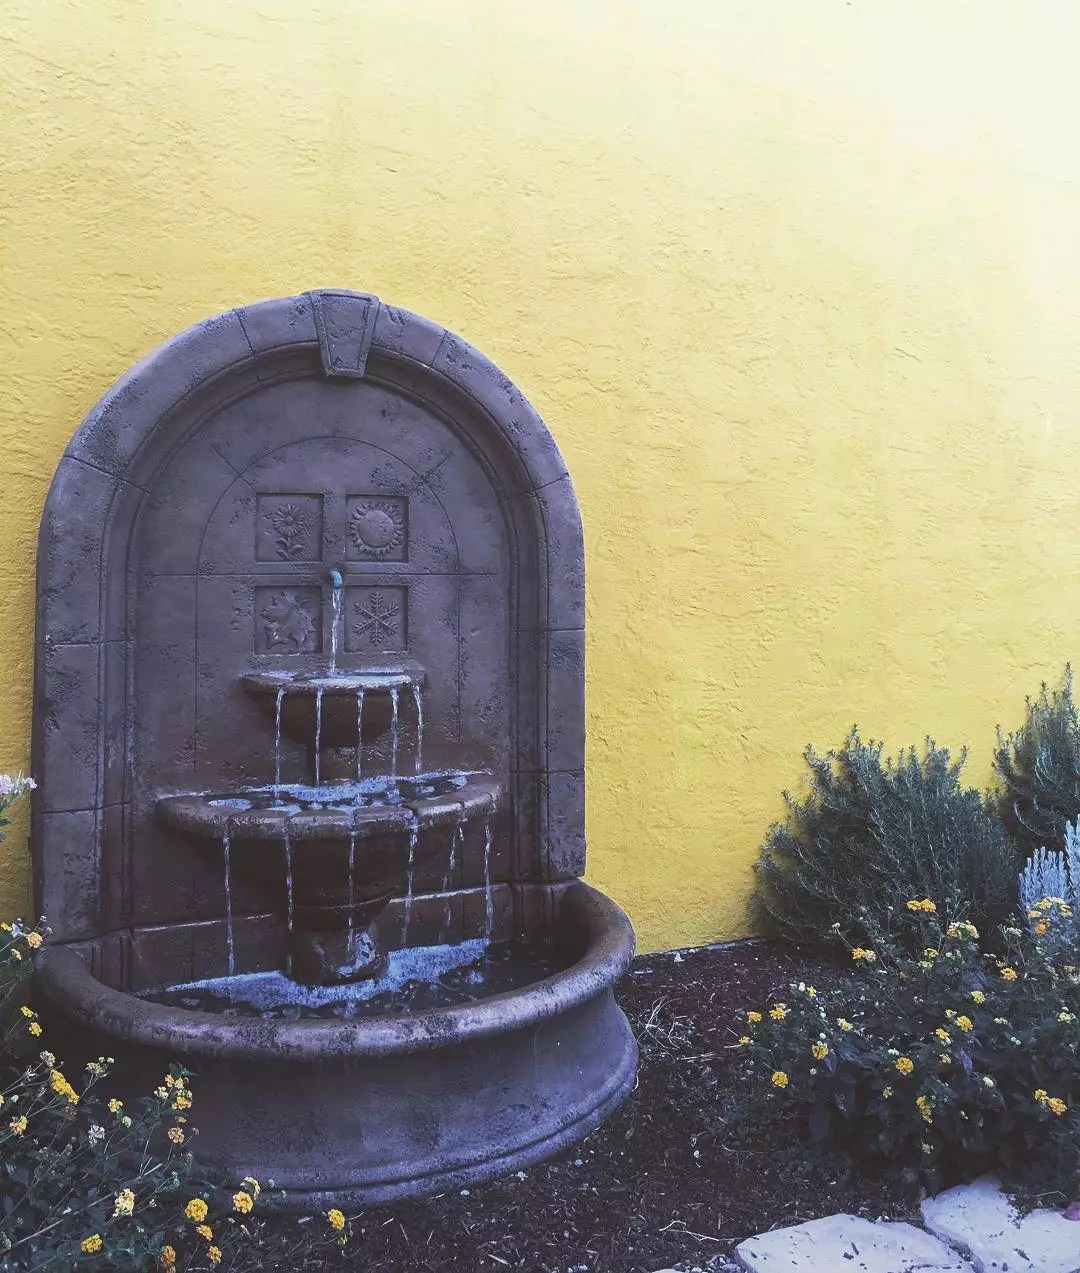 backyard fountain attached to a yellow wall in a flower bed photo by Instagram user @zjeepn.adventures